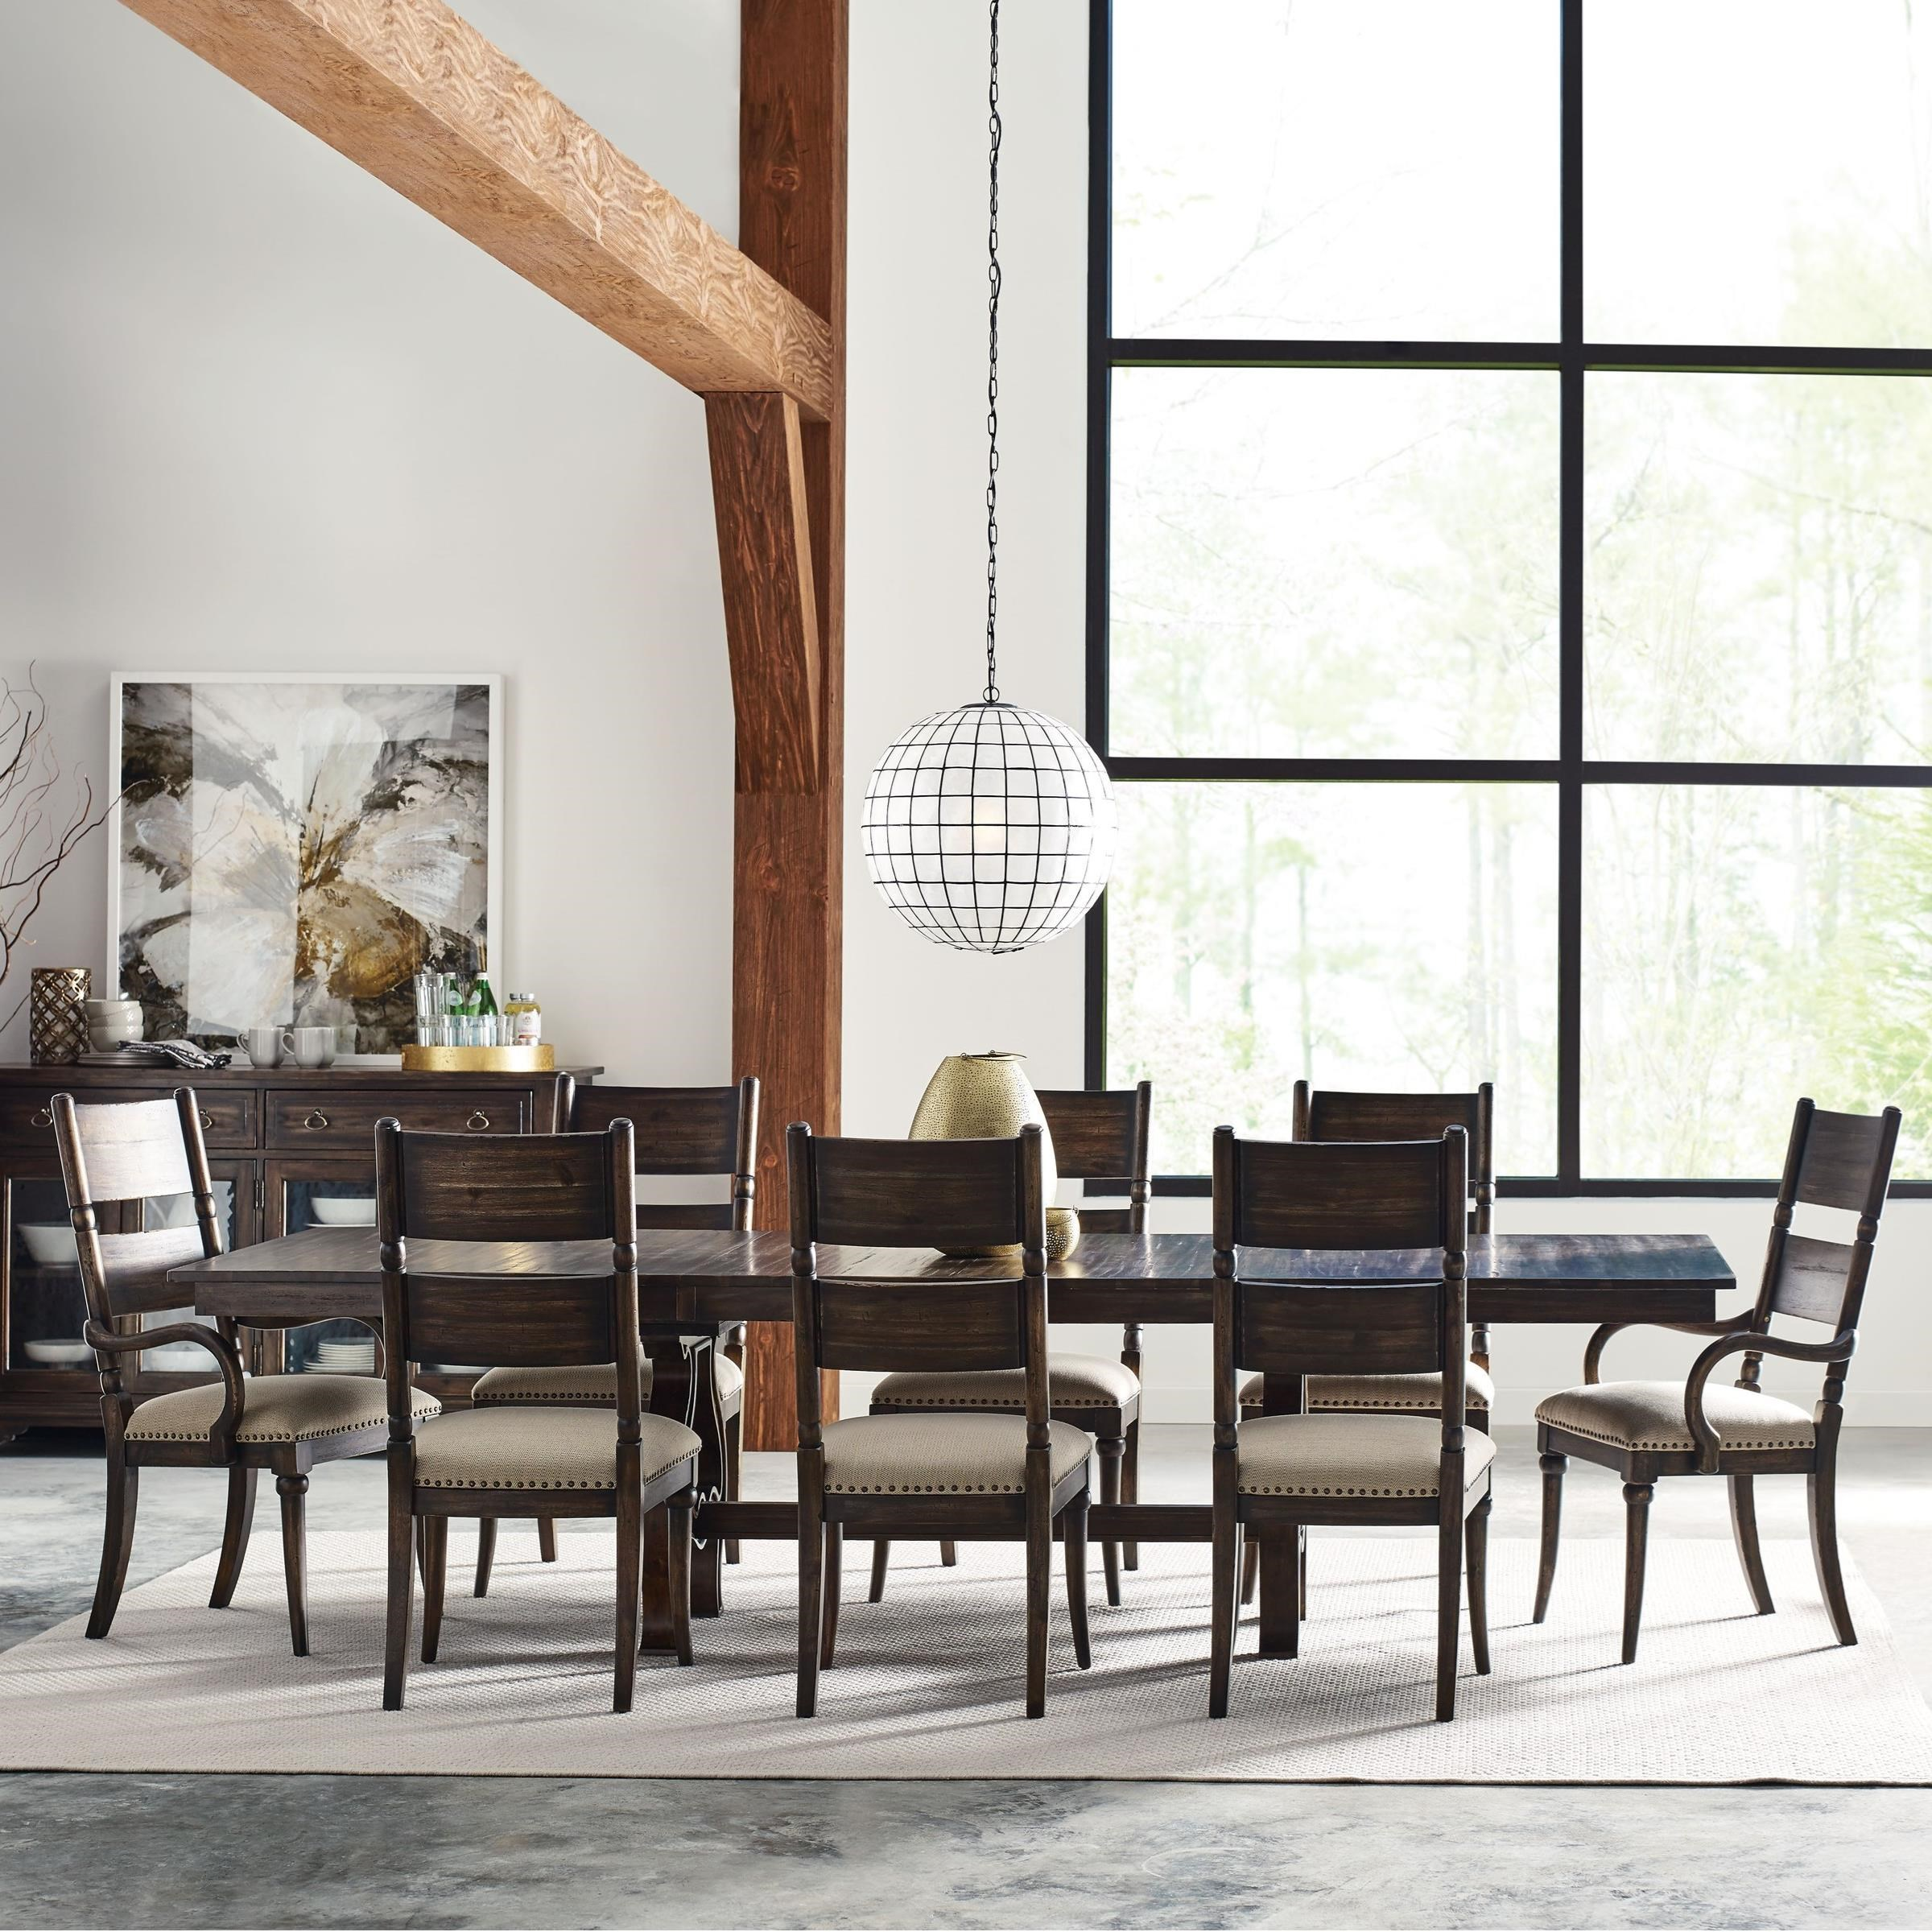 Kincaid Dining Room Set: Kincaid Furniture Wildfire Nine Piece Dining Set With Extendable Trestle Table And Post Chairs